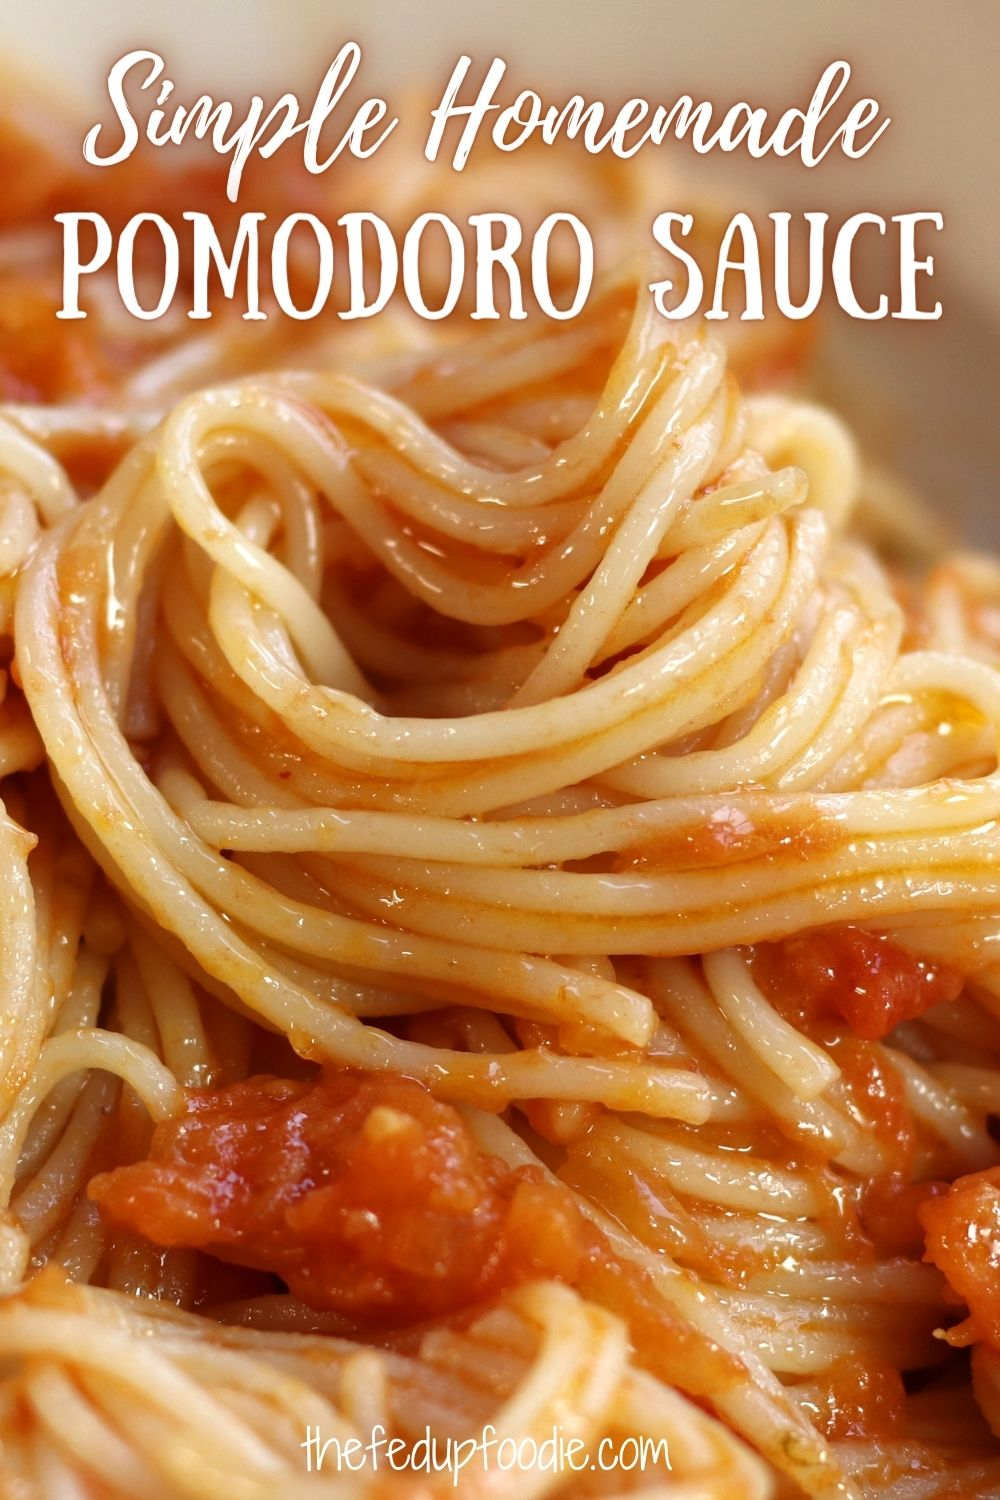 Simple Pomodoro Sauce is a light and tasty basic sauce that is at the heart of Italian cooking. Use this as the base for many Italian recipes or as a quick and easy weeknight dinner served over pasta. #PomodoroSauce #PomodoroSauceRecipe #PomodoroSauceFreshTomatoes  #PomodoroSauceHomemade #PomodoroSauceAuthentic